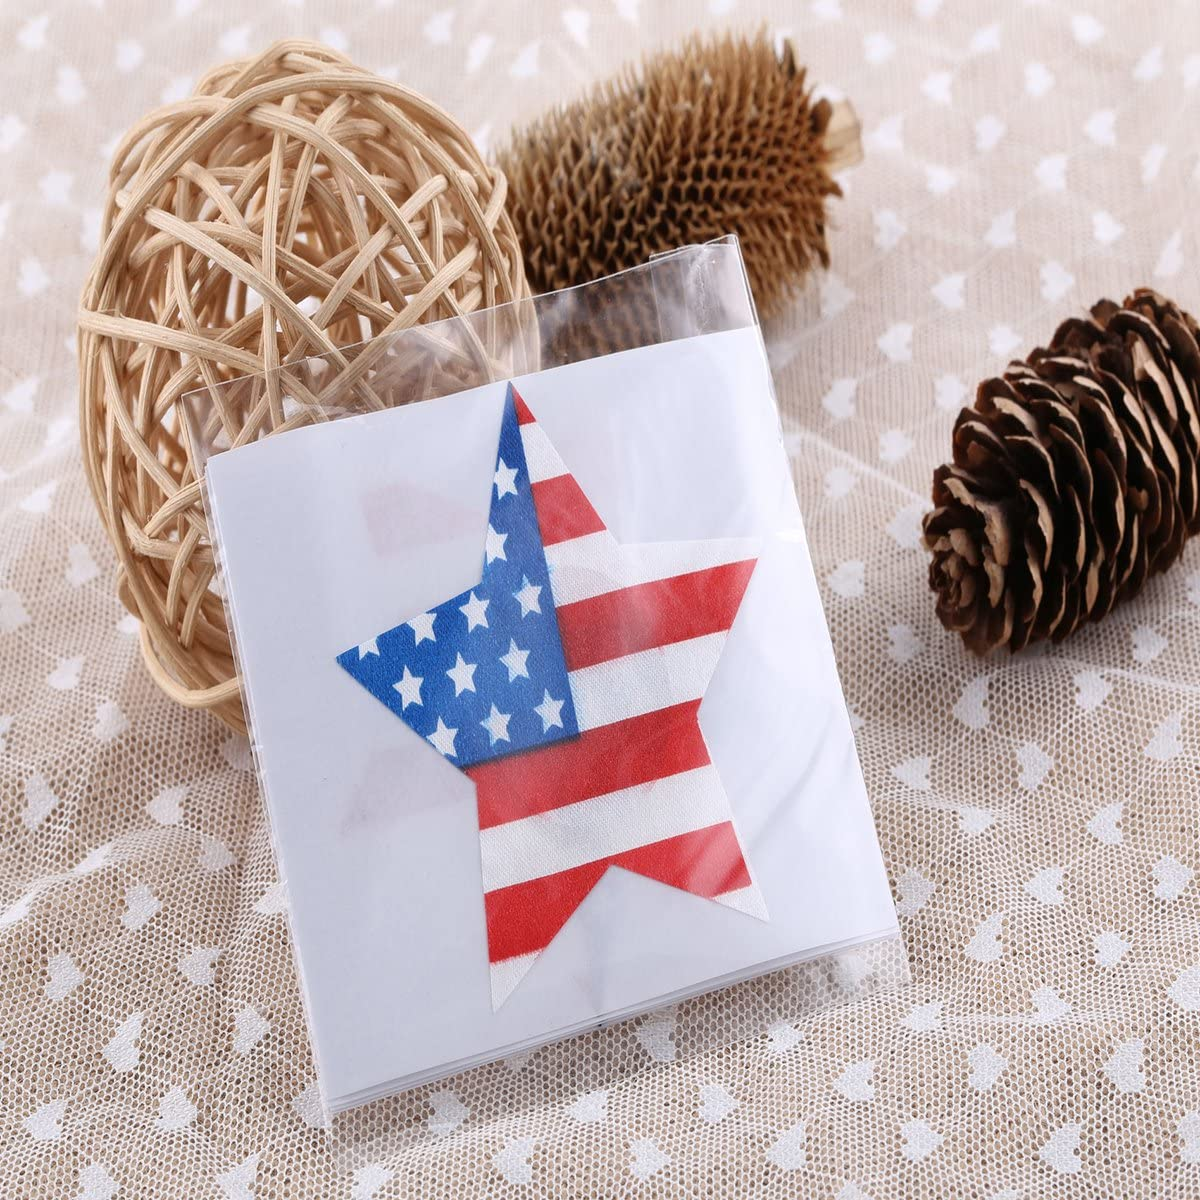 Mothers Day gift or gift for women Tinksky Disposable Nipple Stickers American Flag Strip Star Lingerie Pasties 12 Pairs